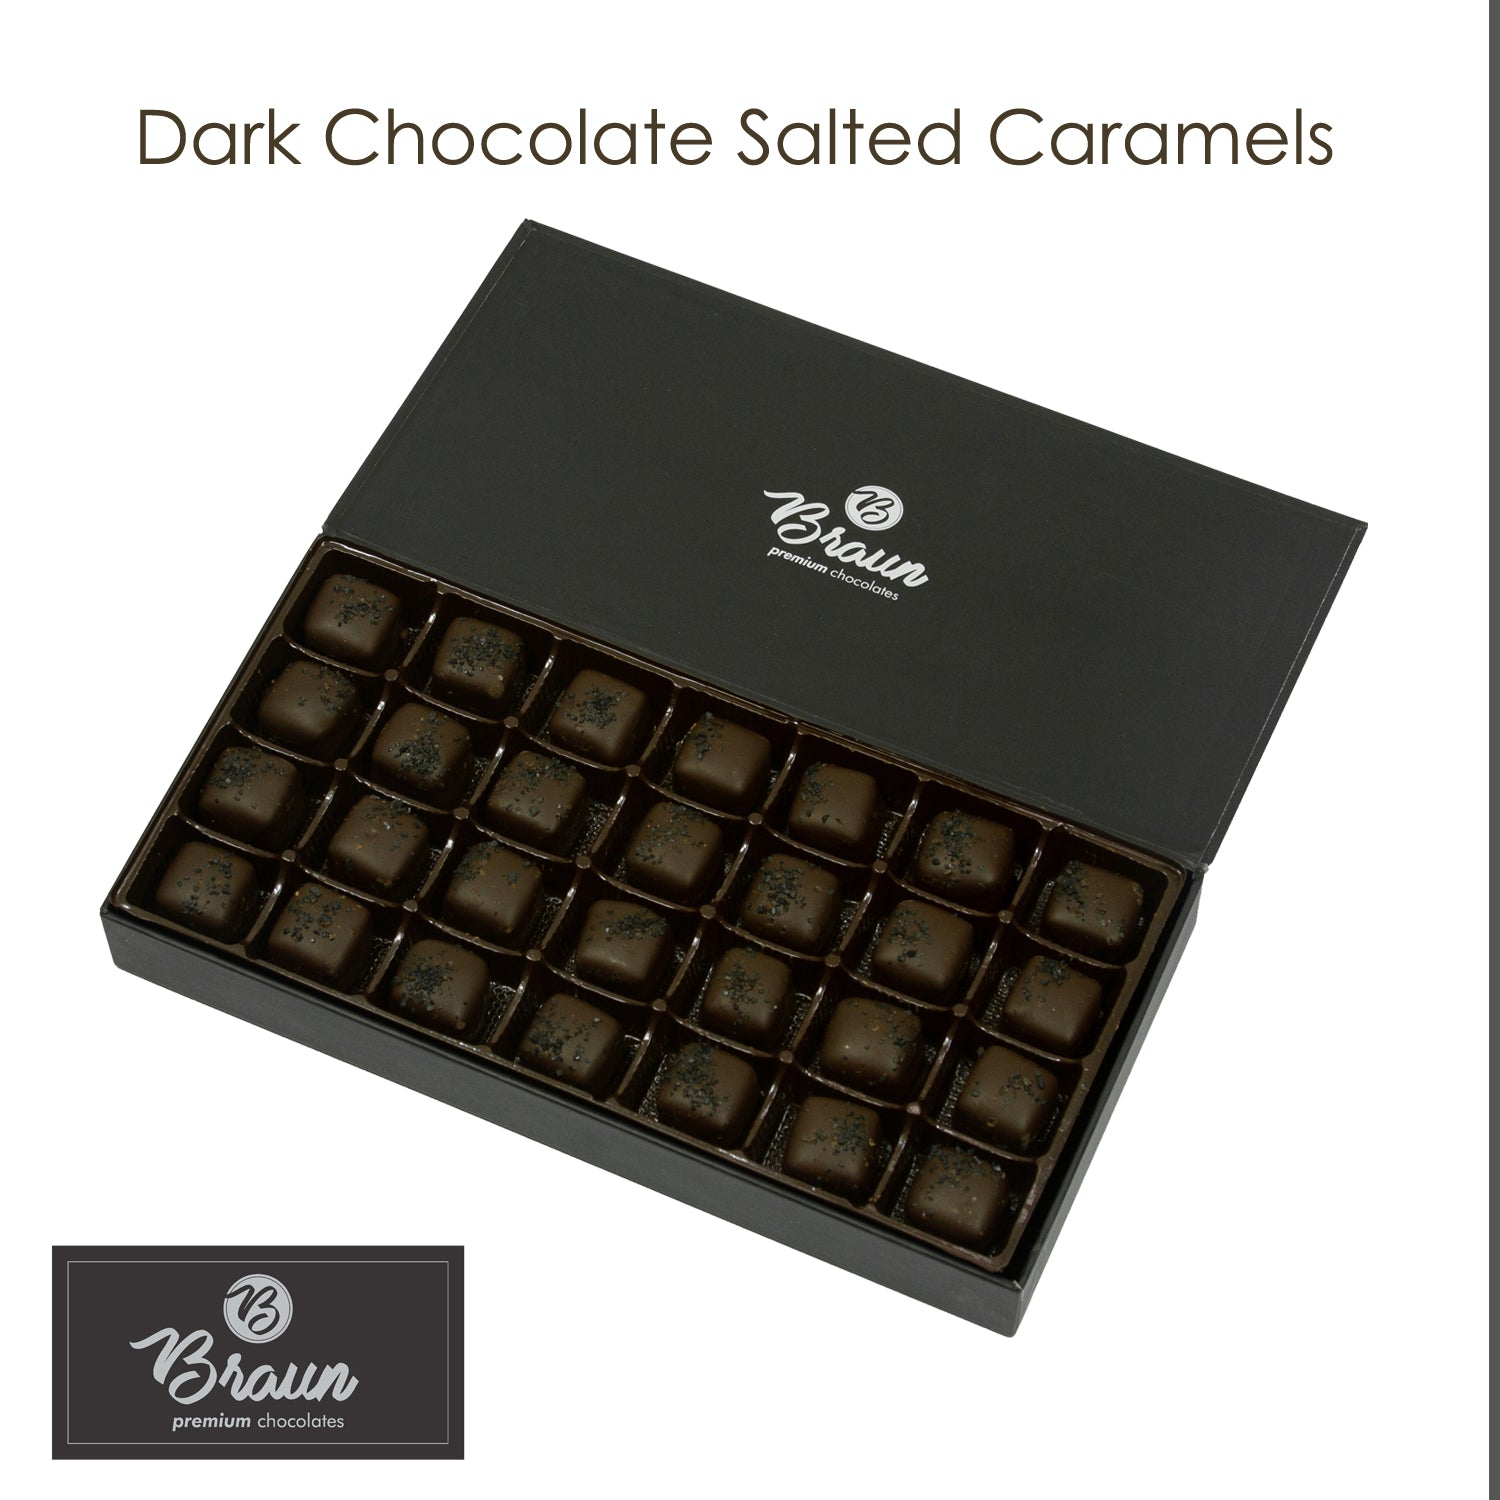 Dark Chocolate Salted Caramels - Keepsake Box